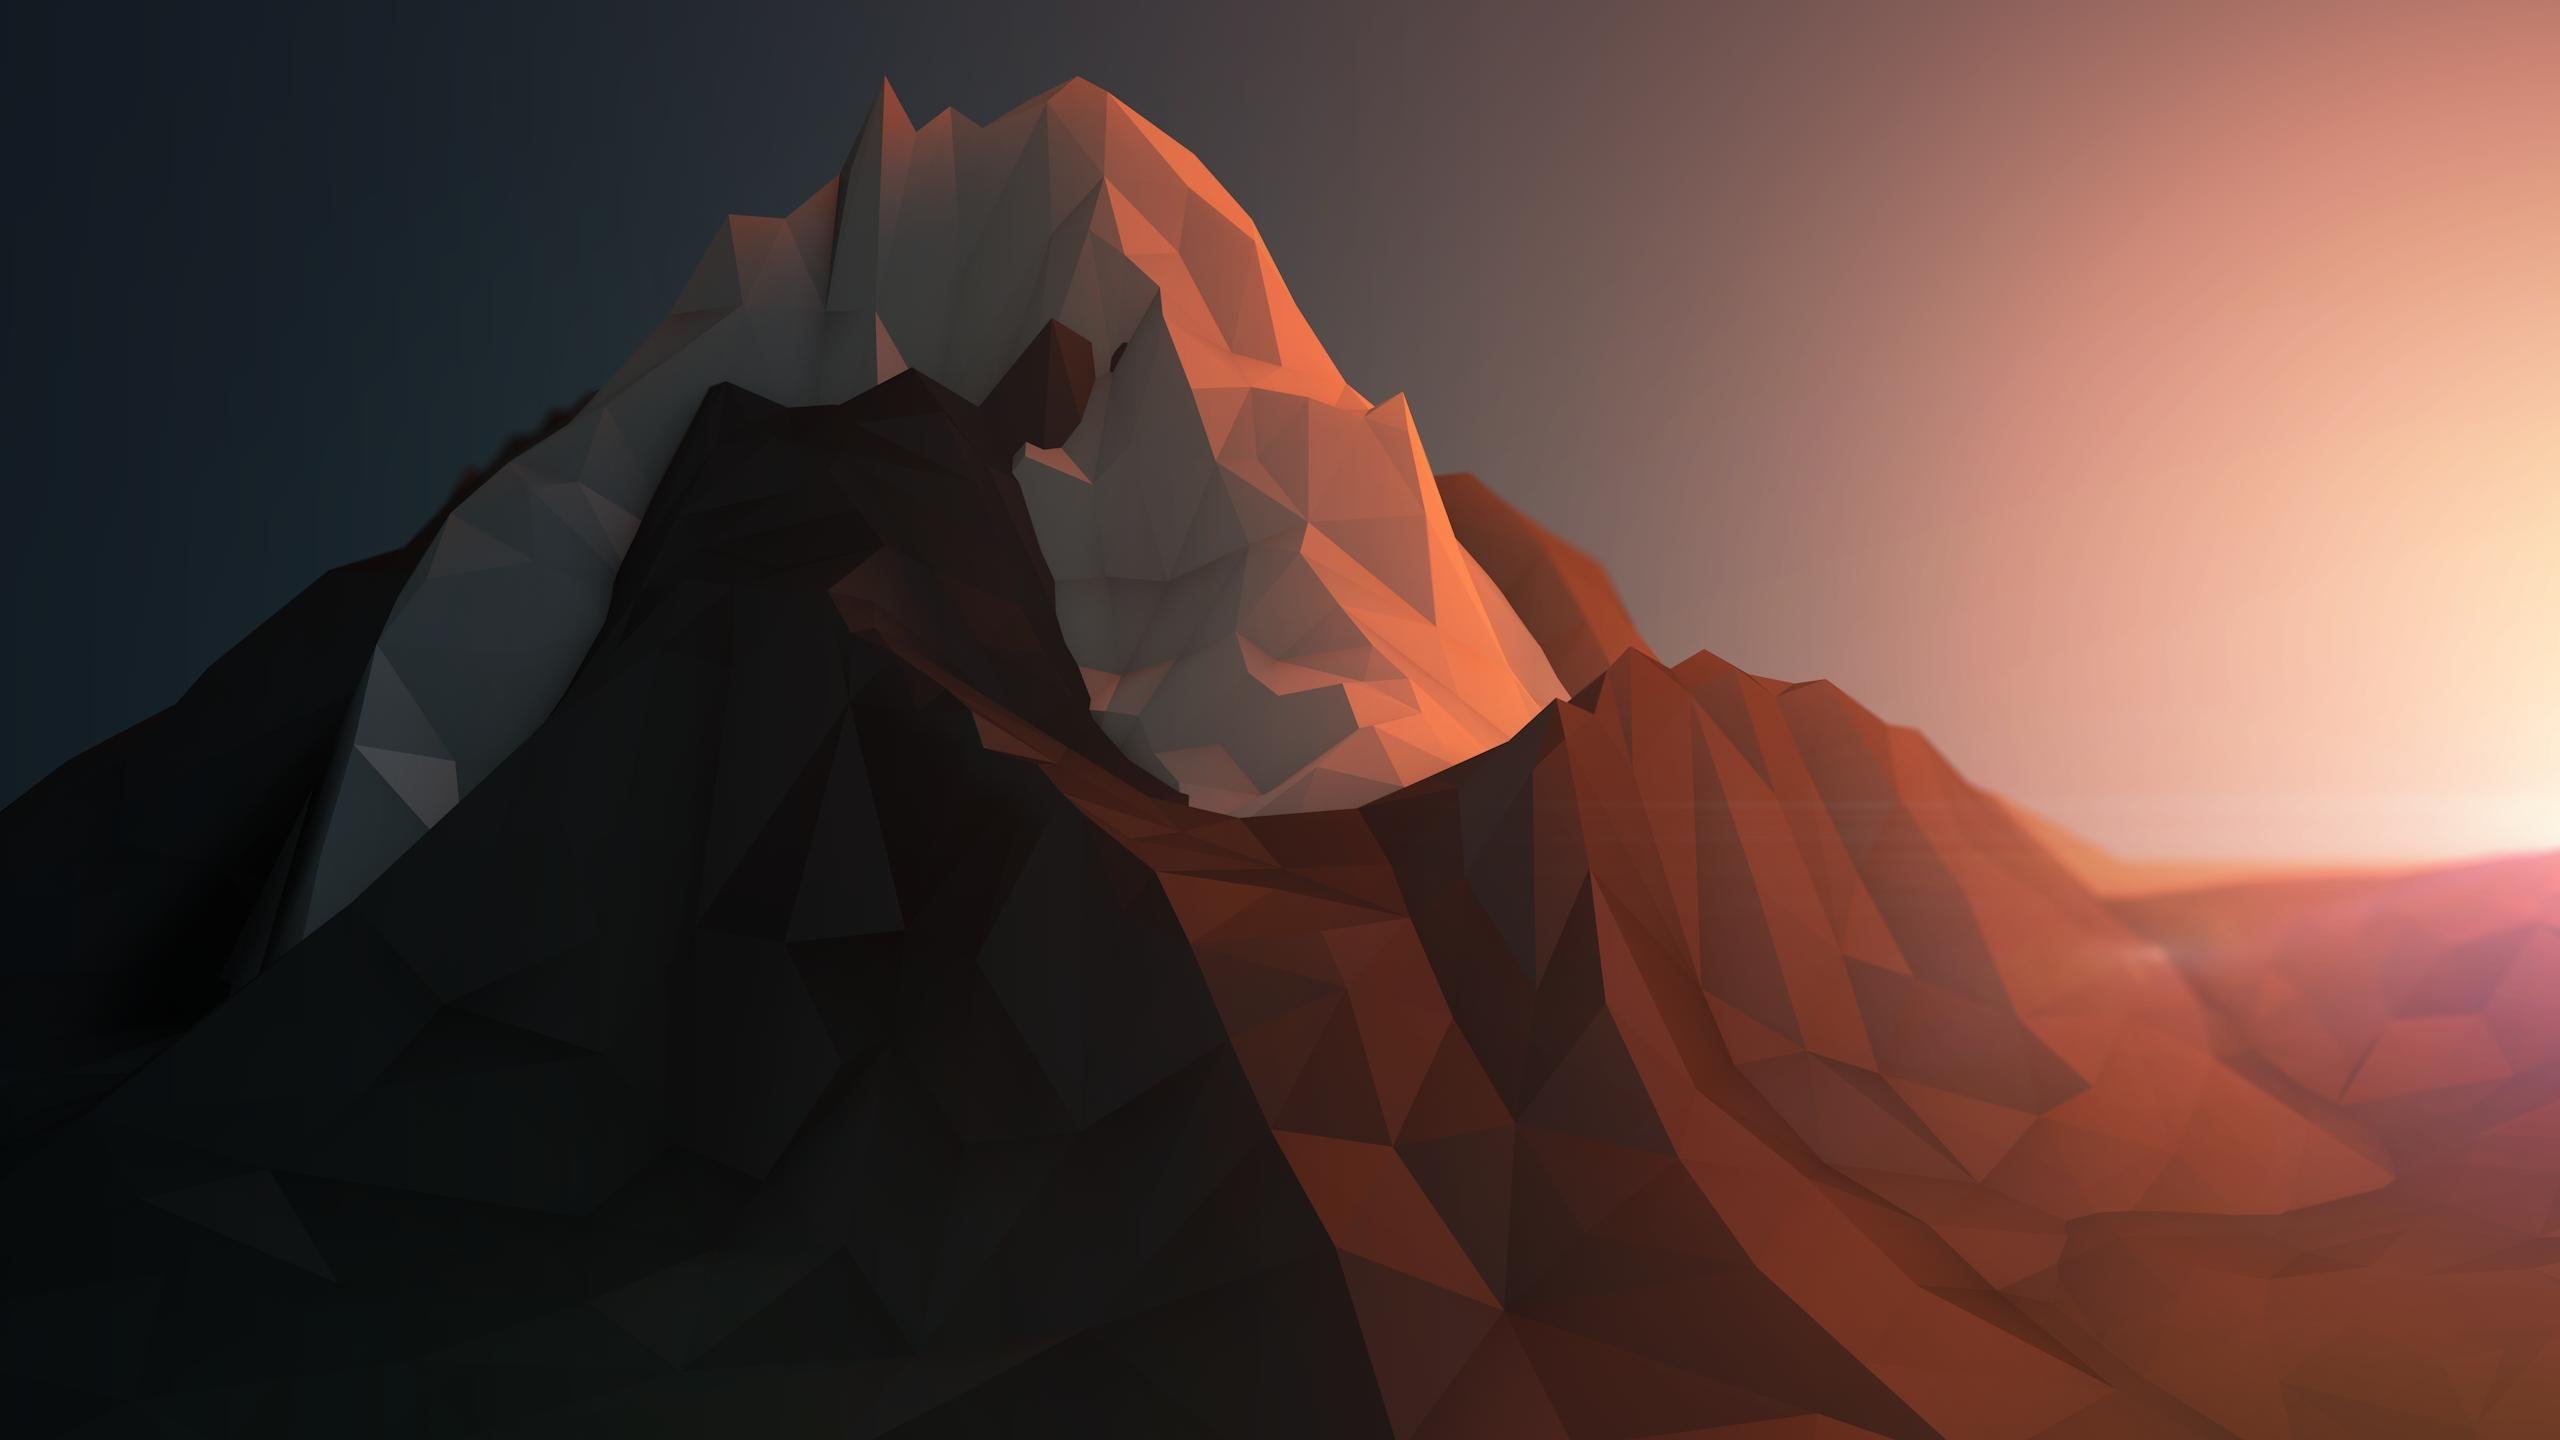 Polygon Mountain Wallpaper - Polygon Mountain Wallpaper